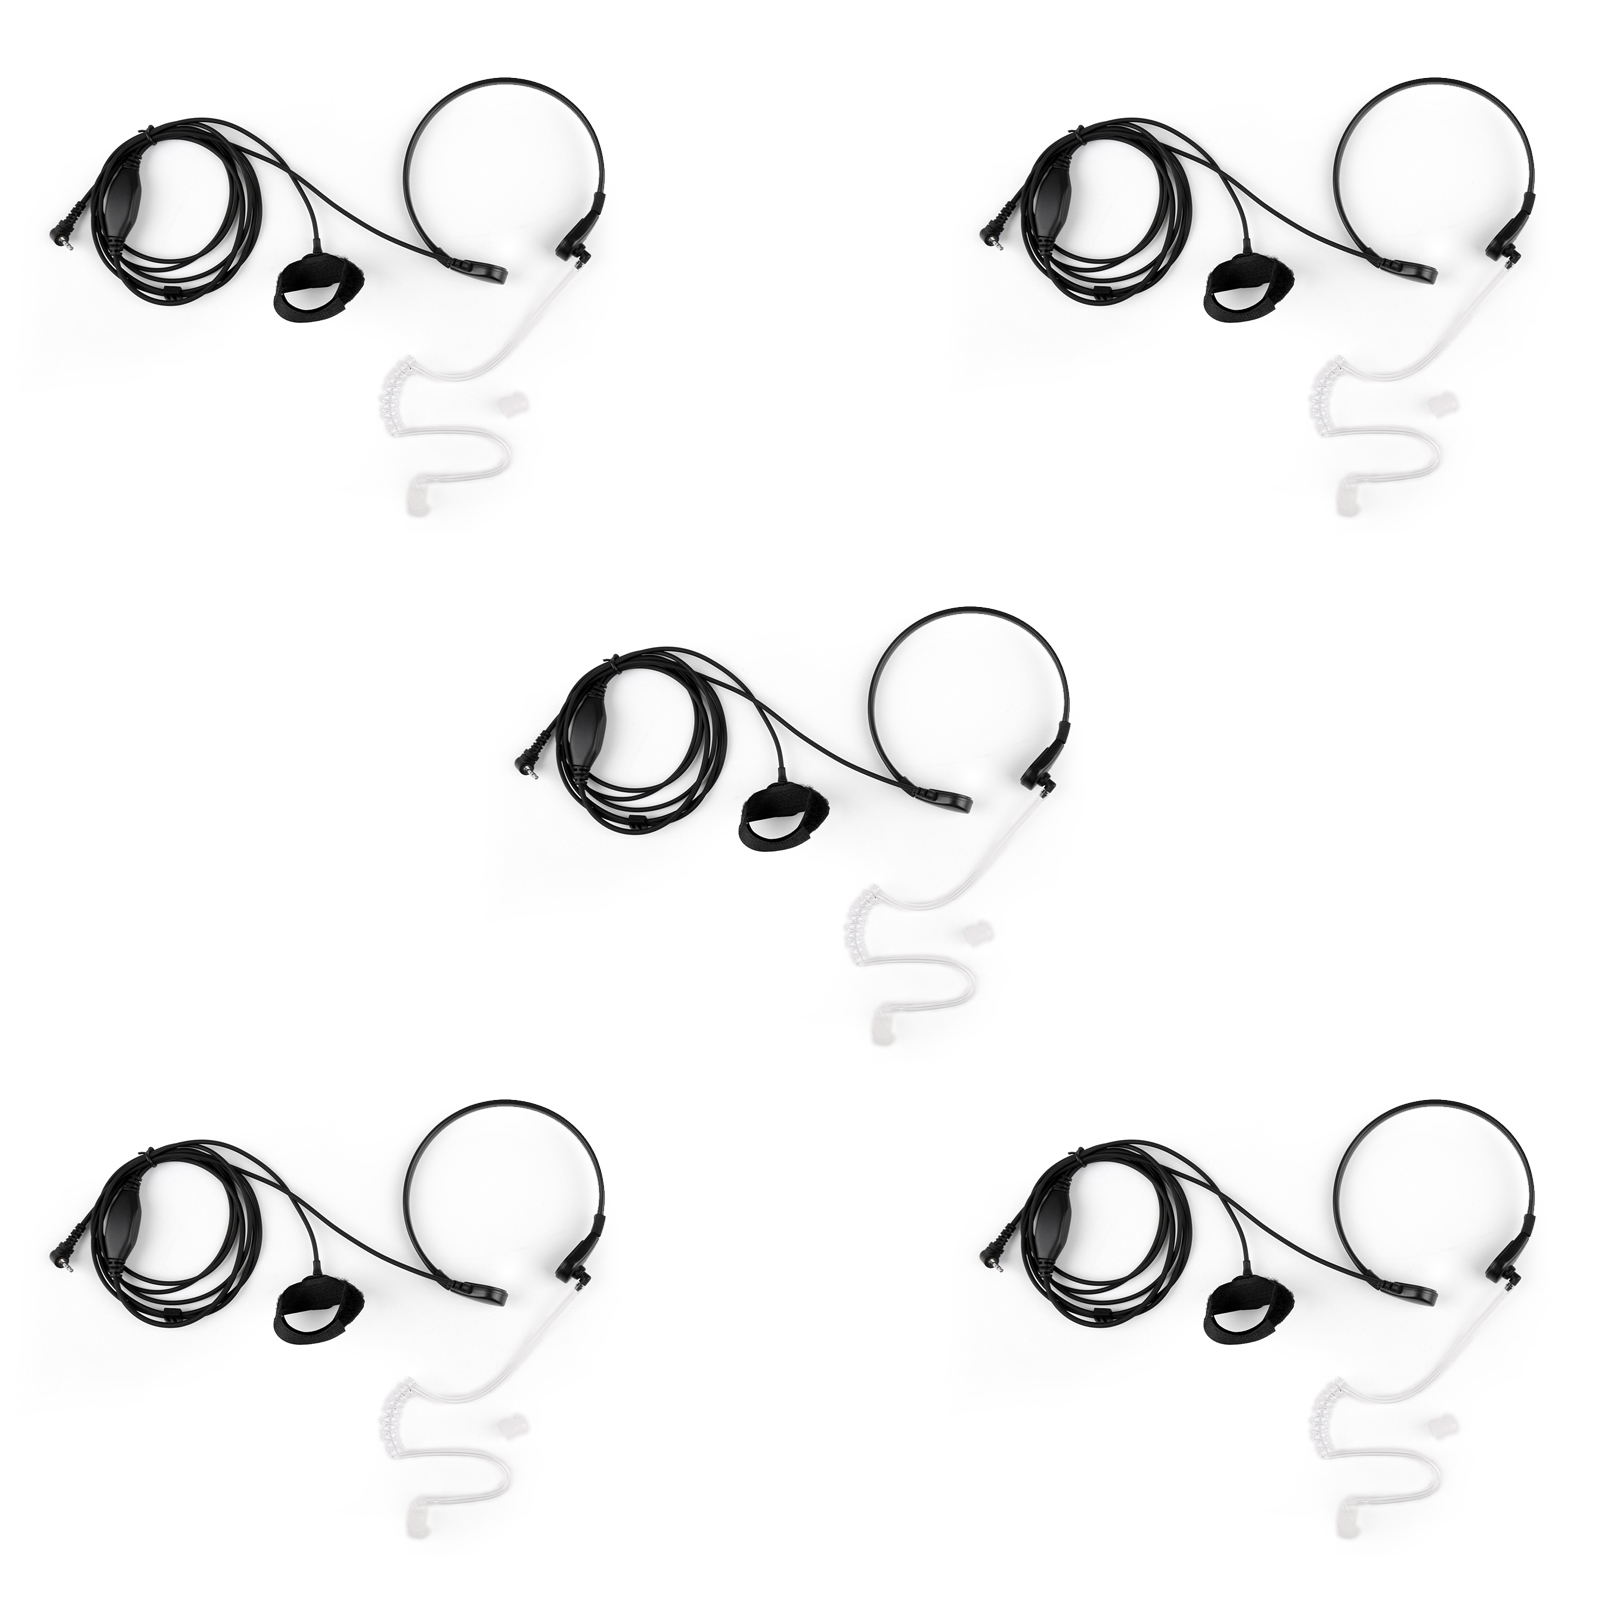 5x Throat Covert Acoustic Tube Throat Mic Headset Ptt For